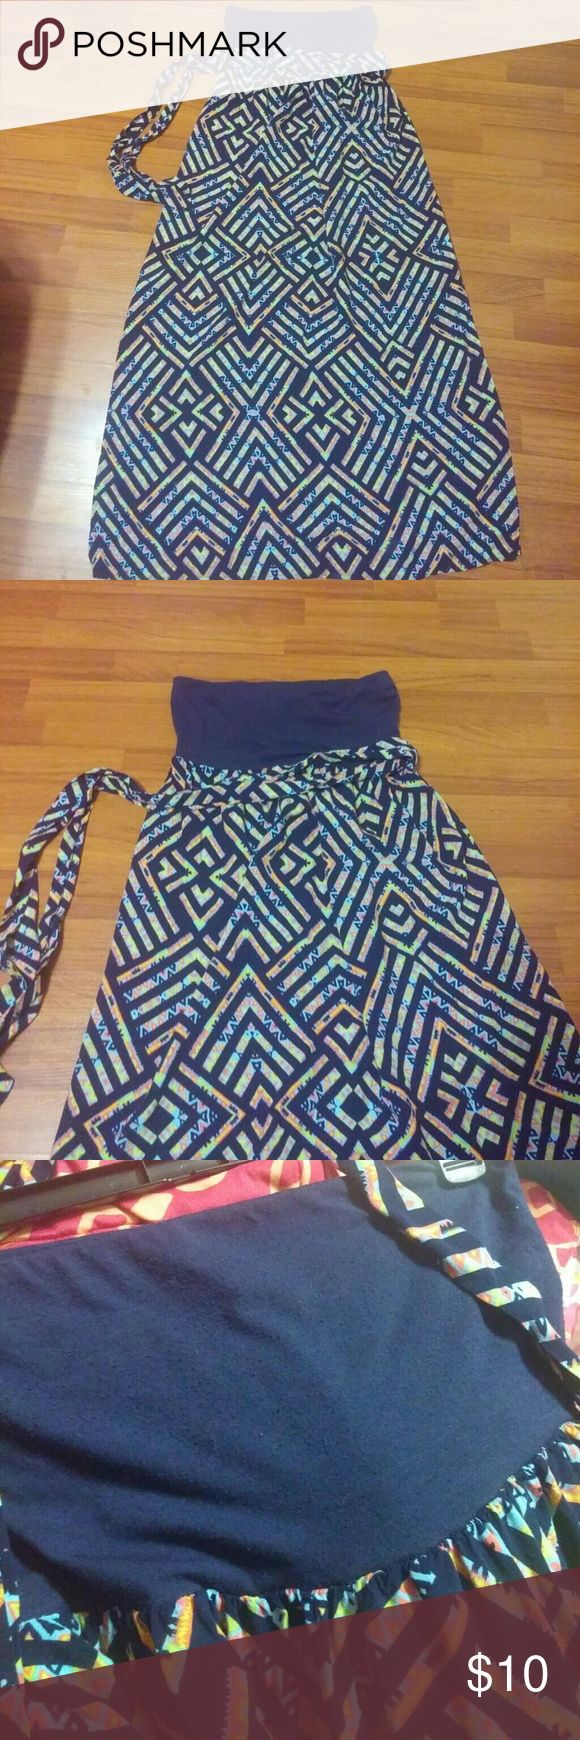 Aztec Maxi DRESS 💃 Gorgeous printed belted maxi dress. Belt is removable. Navy at top and multicolored skirt. Overall good condition just showing small pilling at the top. See last photo. Xhilaration Dresses Maxi